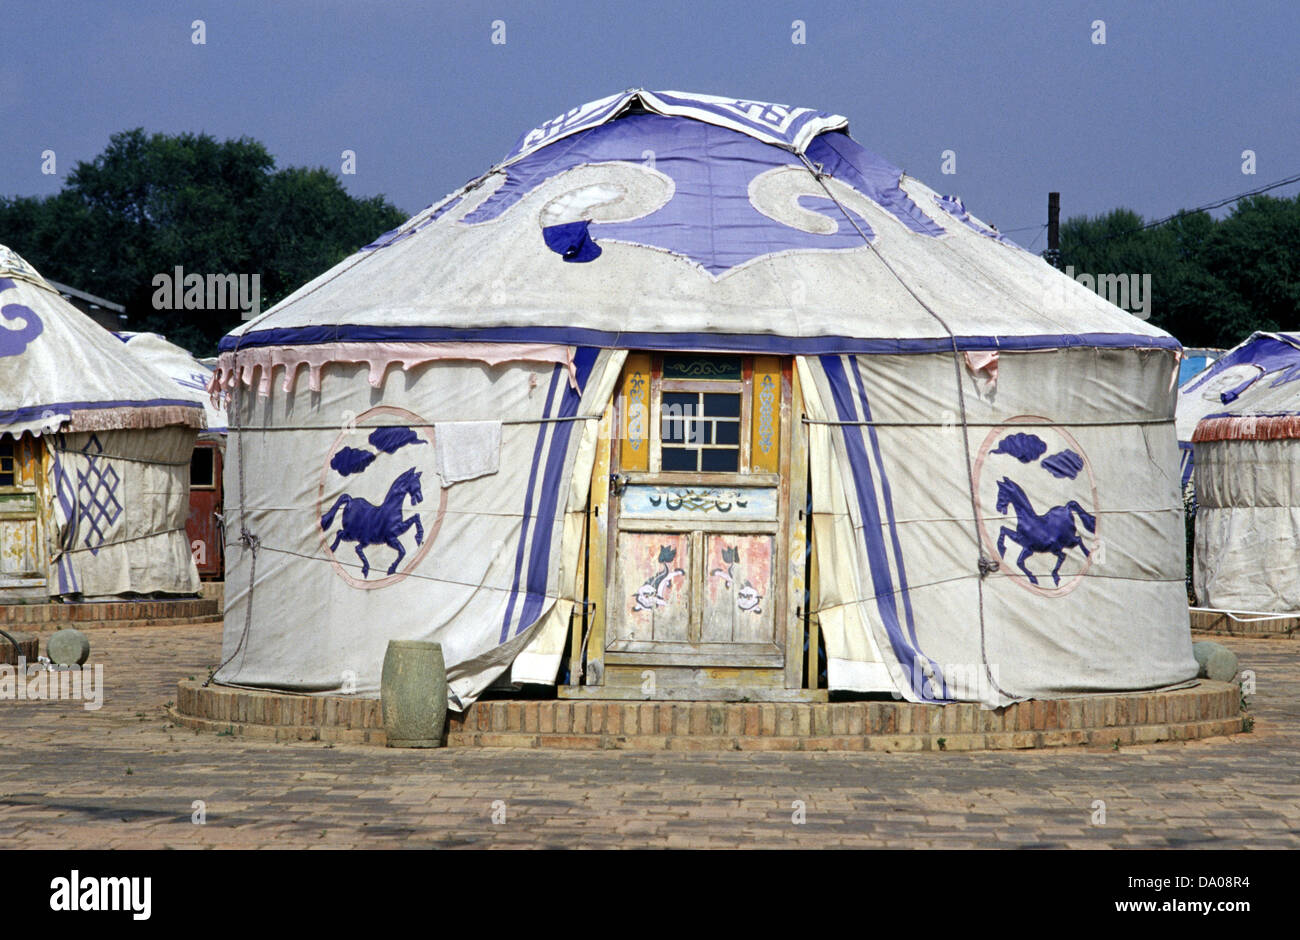 Traditional Mongolian yurt or ger tent & Traditional Mongolian yurt or ger tent Stock Photo Royalty Free ...